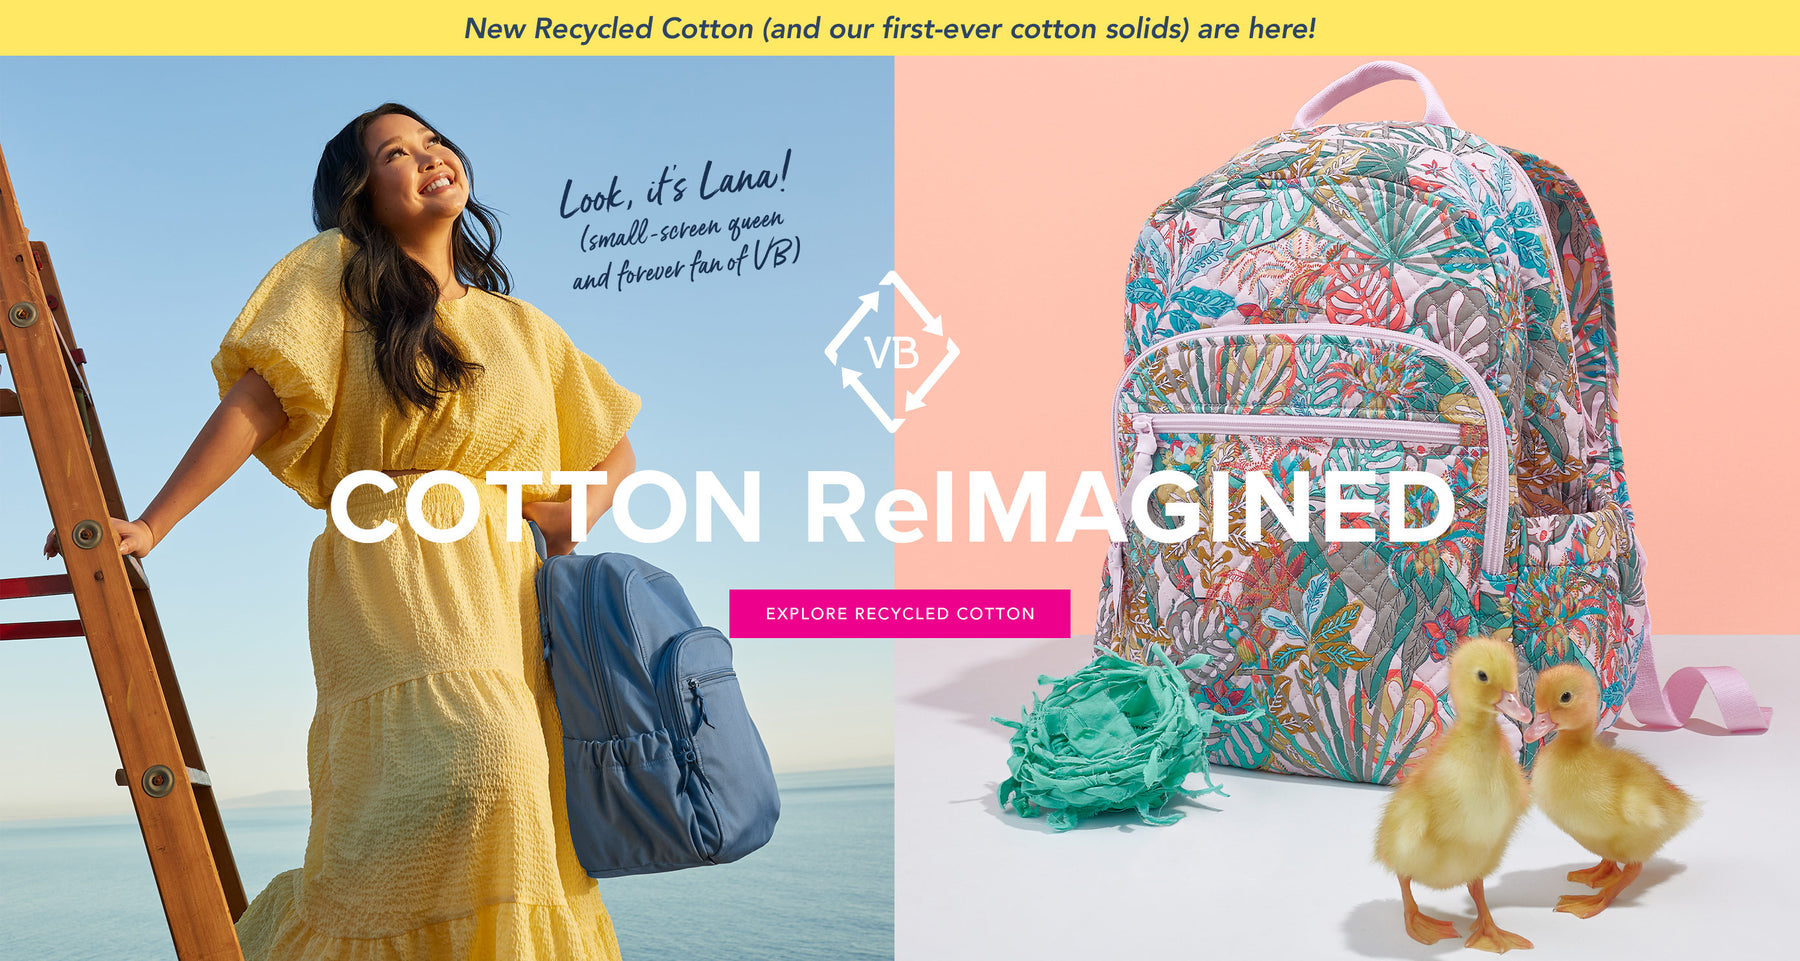 NEW Recycled Cotton (and our first-ever cotton solids) are here! COTTON Re-IMAGINED Explore Recycled Cotton